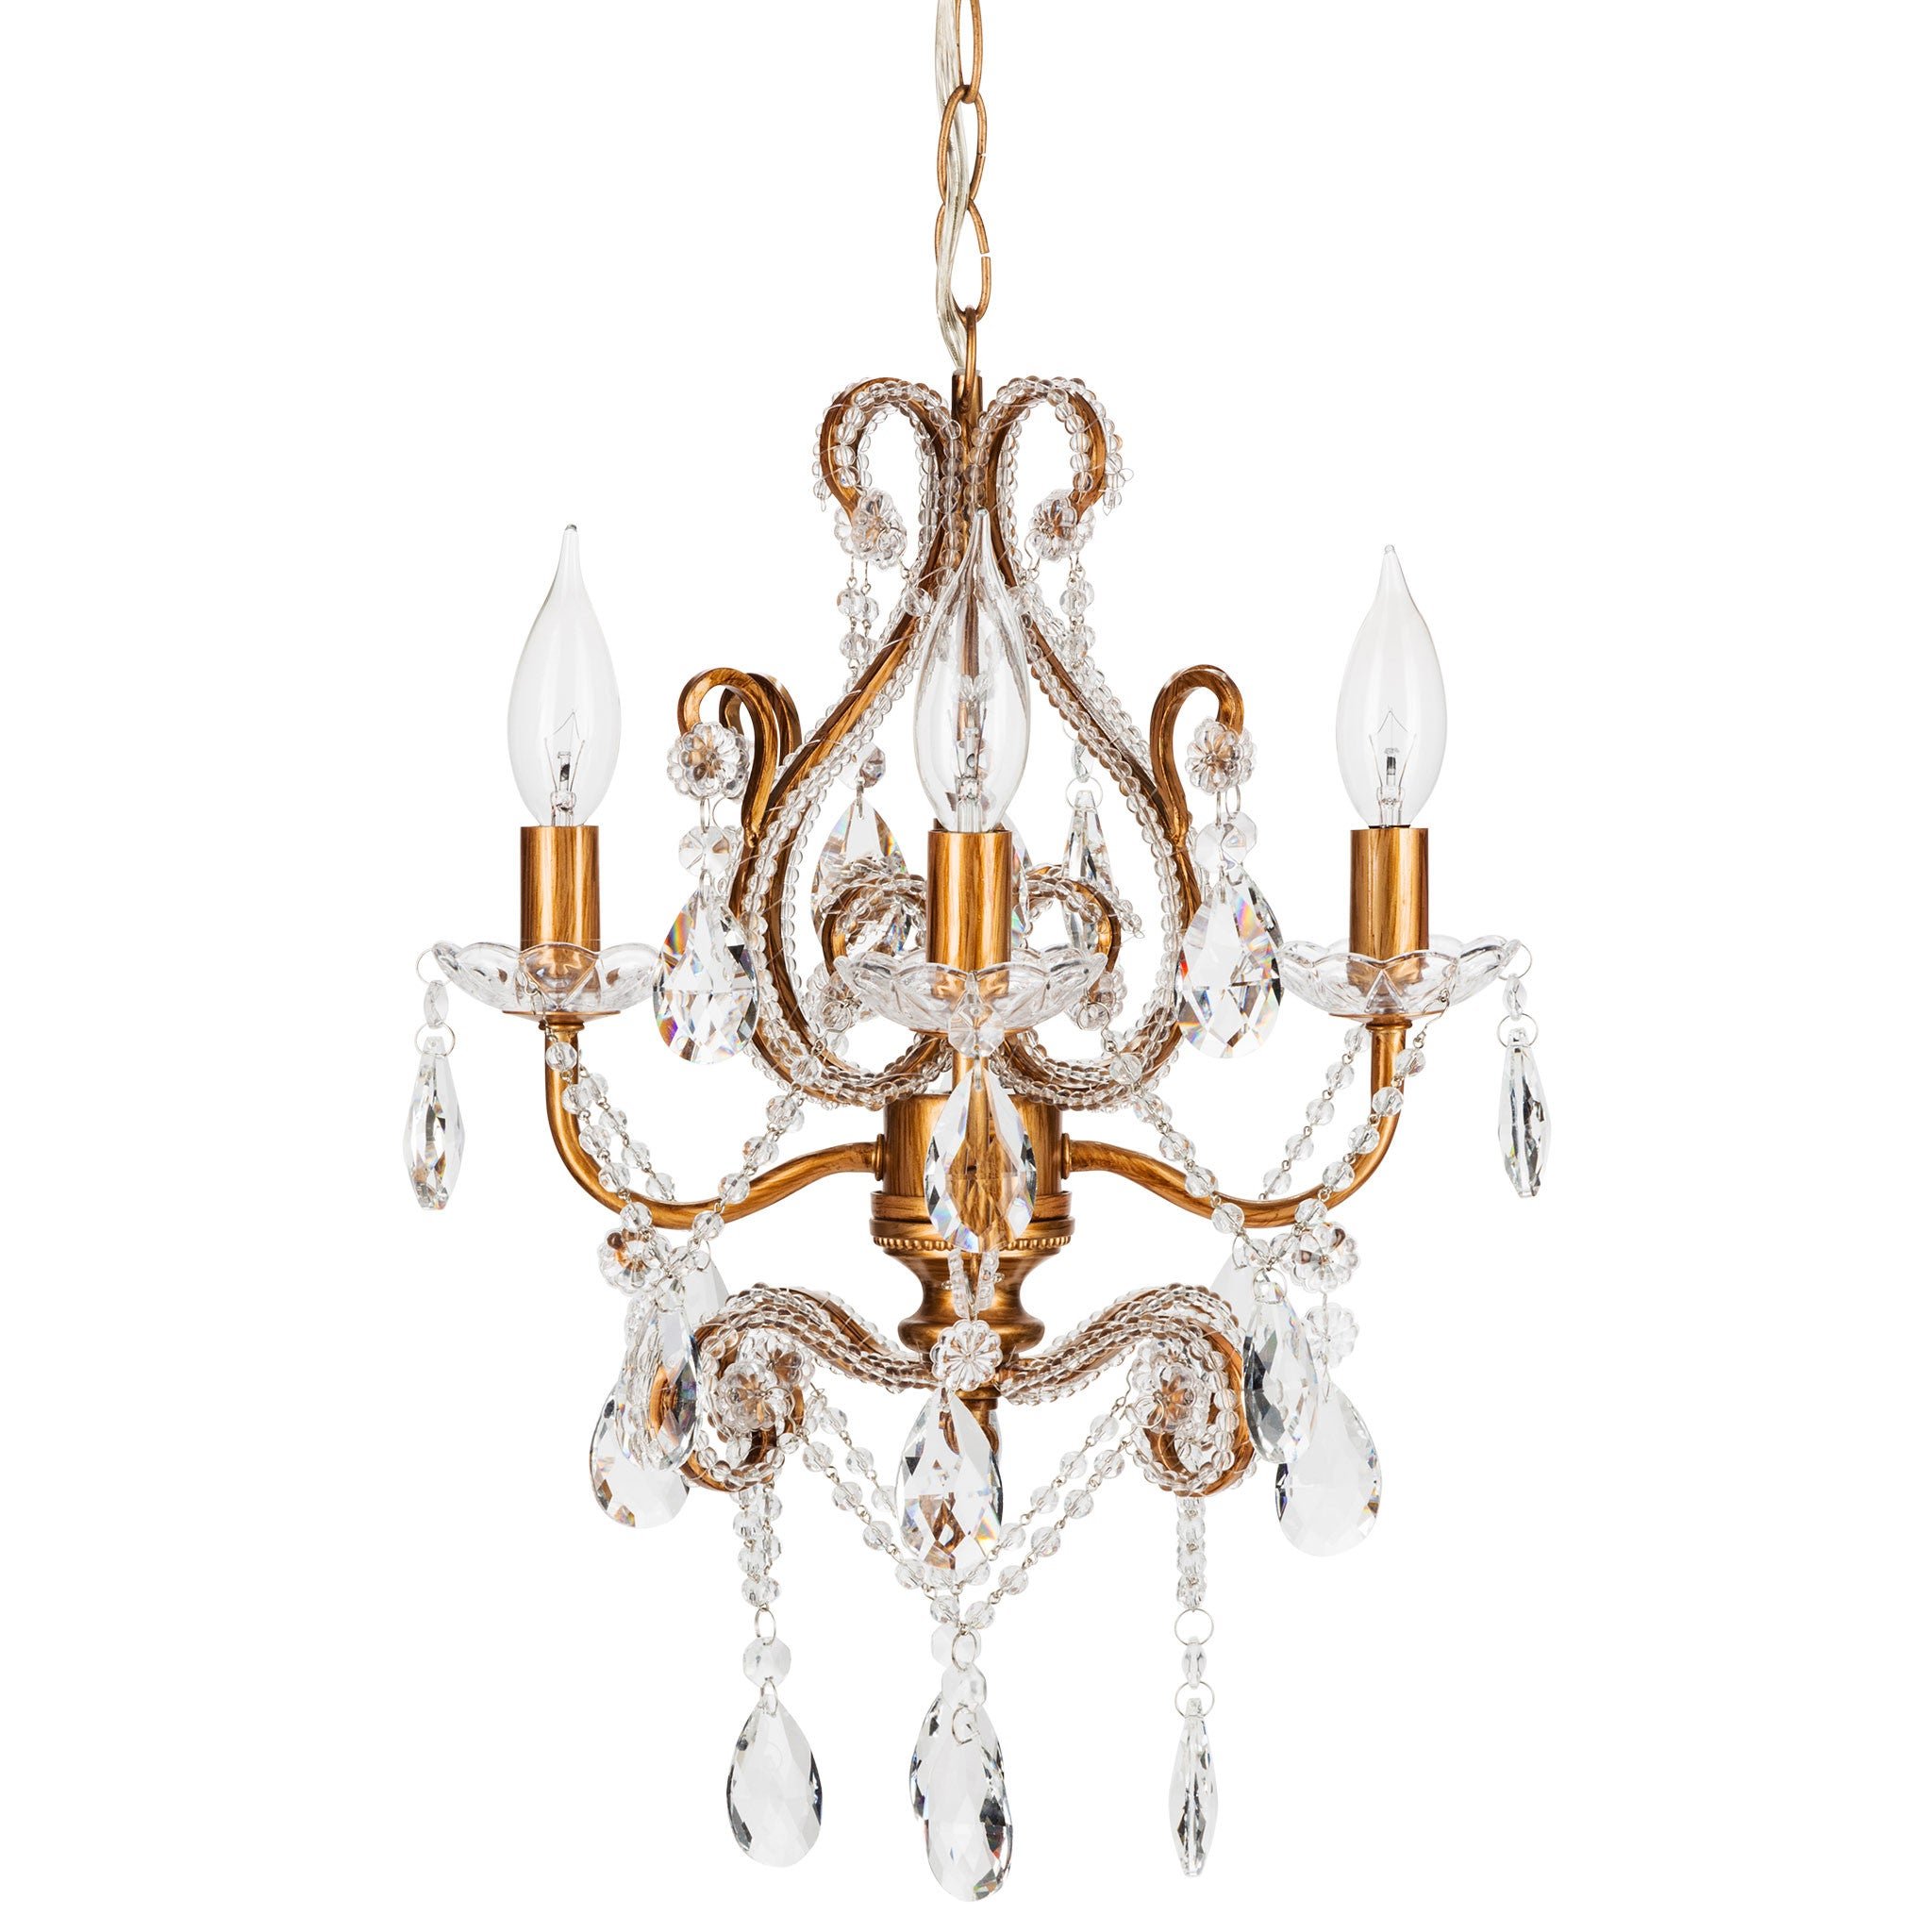 Amalfi Decor 4 Light Mini Crystal Beaded Plug-In Chandelier (Gold) | Wrought Iron Frame with Glass Crystals